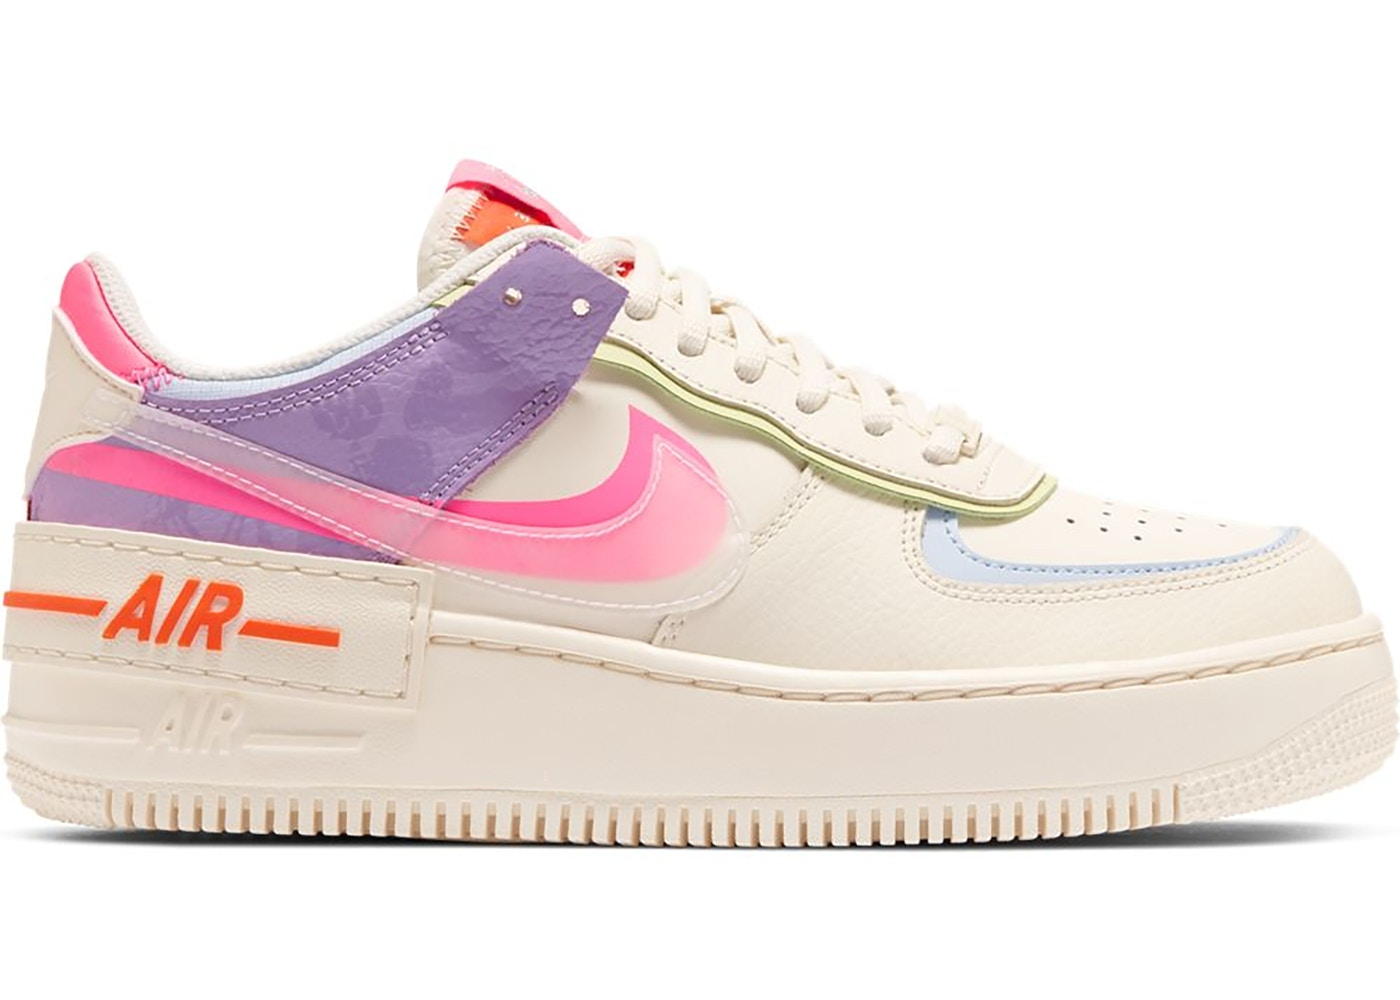 Nike Air Force 1 Shadow Beige Pale Ivory W Cu3012 164 Buy and sell nike air force shoes at the best price on stockx, the live marketplace for 100% real nike sneakers and other popular new releases. nike air force 1 shadow beige pale ivory w